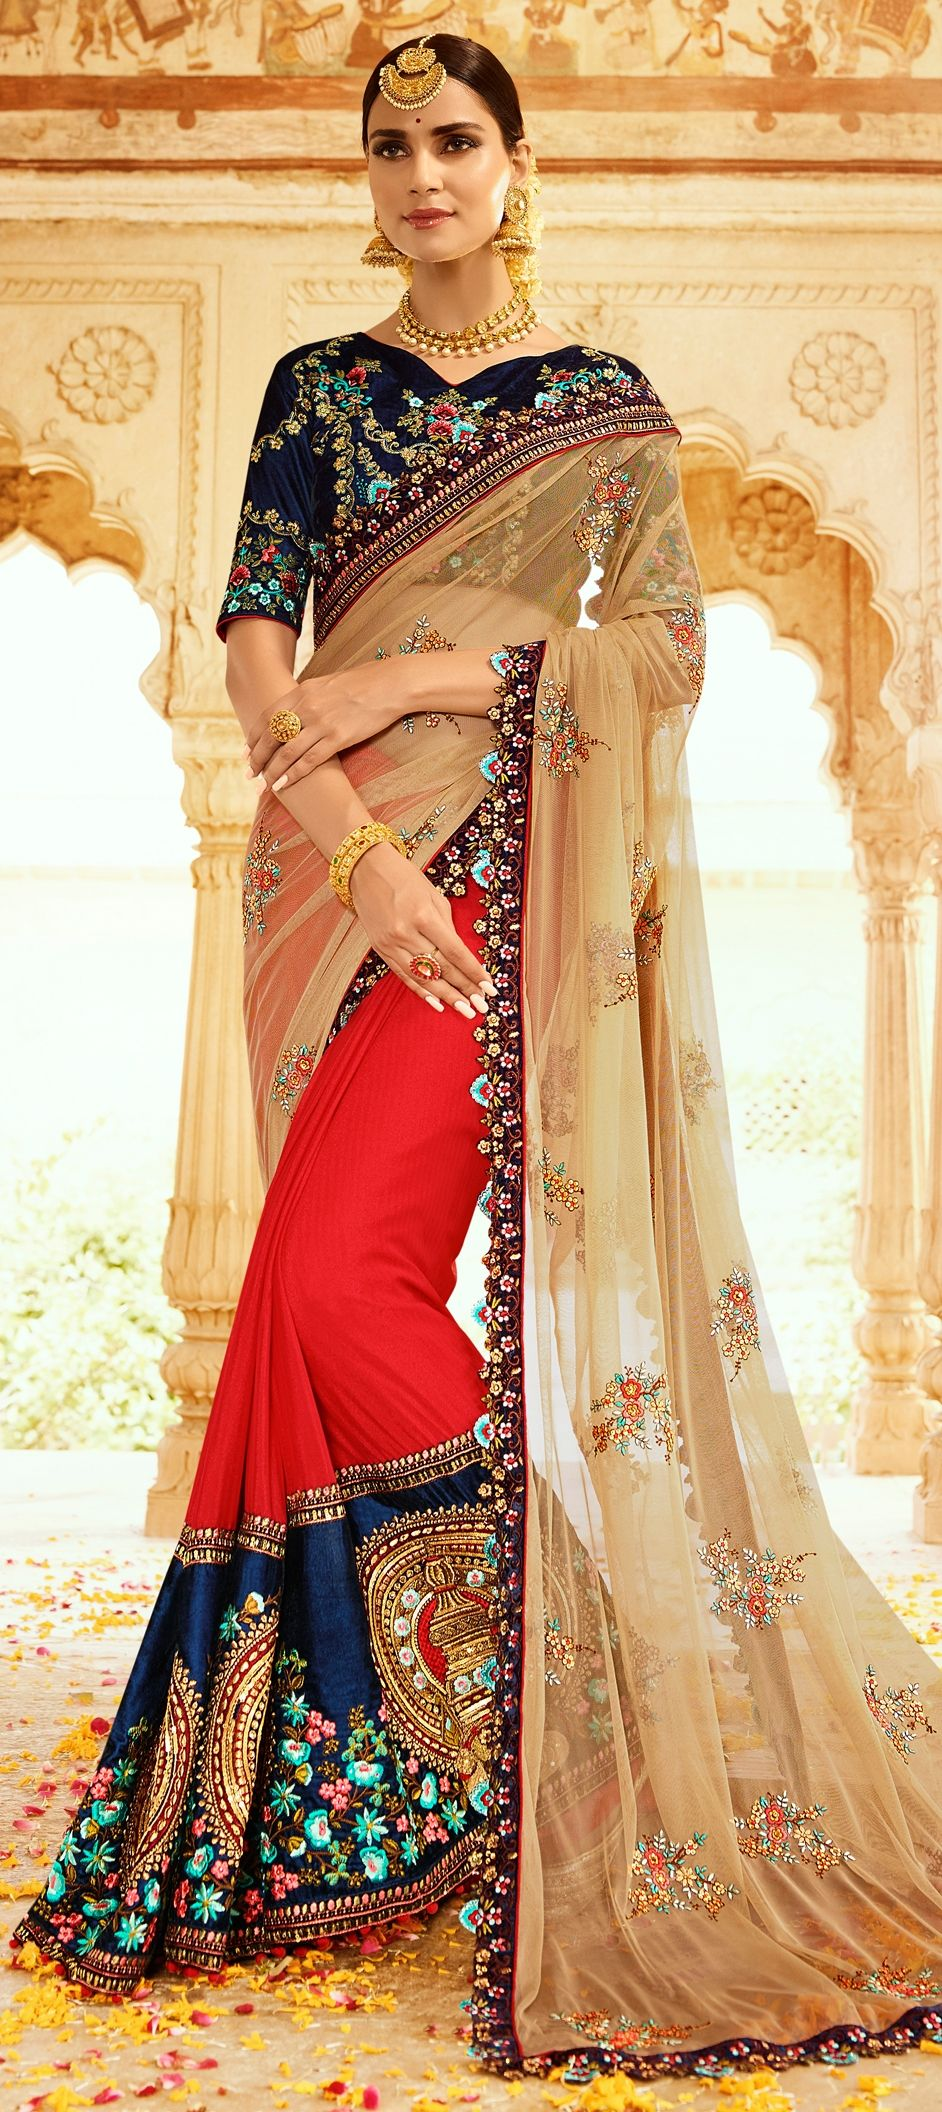 54740134d245 761075: Beige and Brown, Red and Maroon color family Bridal Wedding Sarees  with matching unstitched blouse.